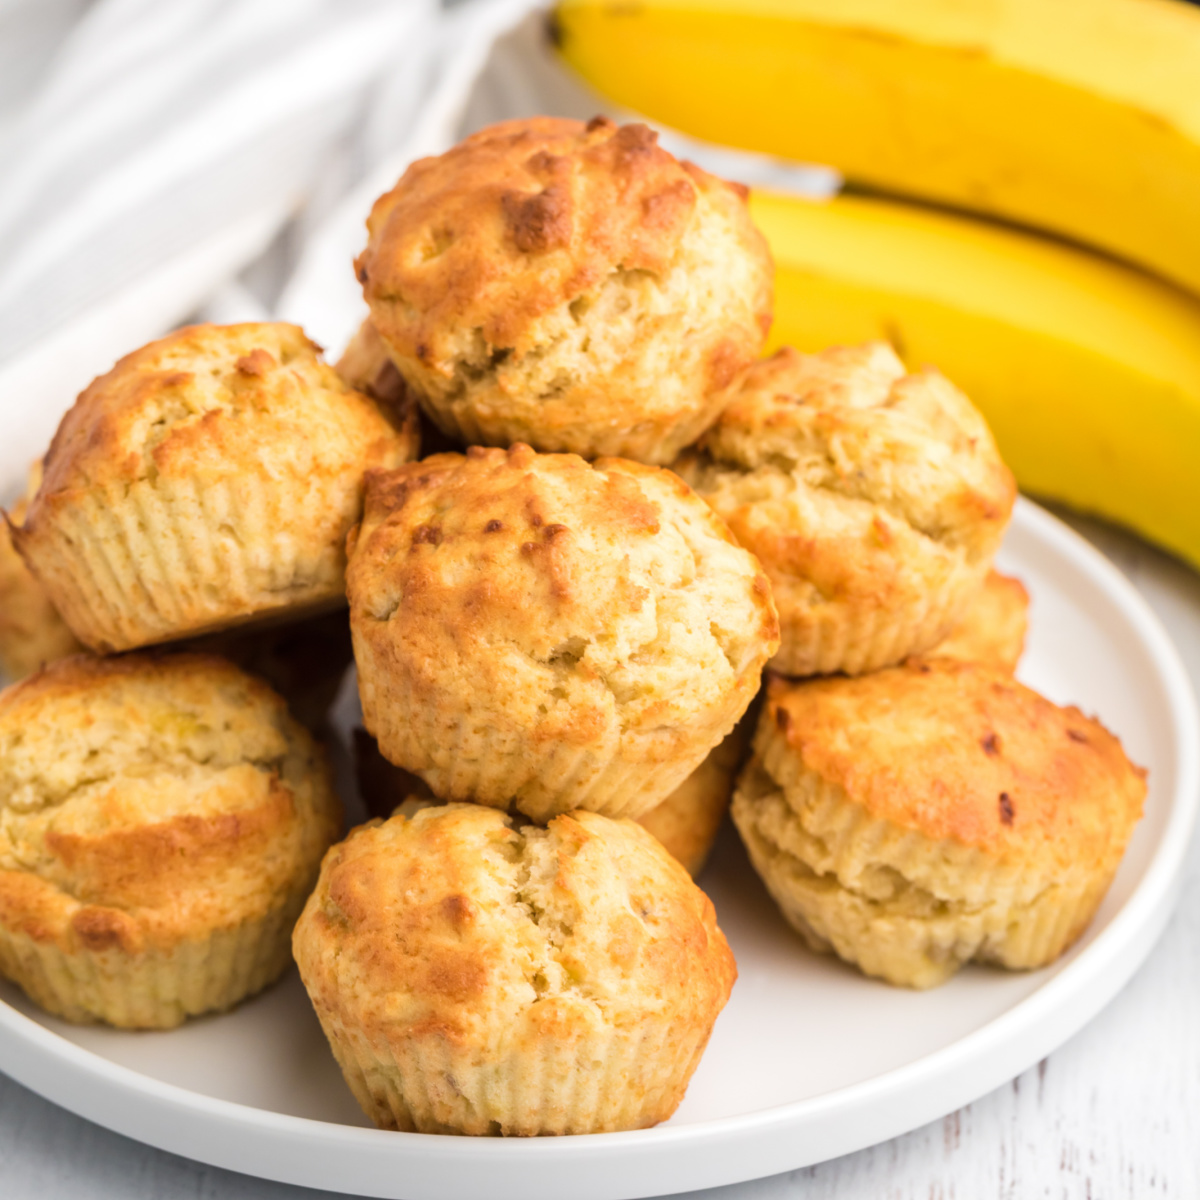 Banana Muffins on a plate and ready to serve.